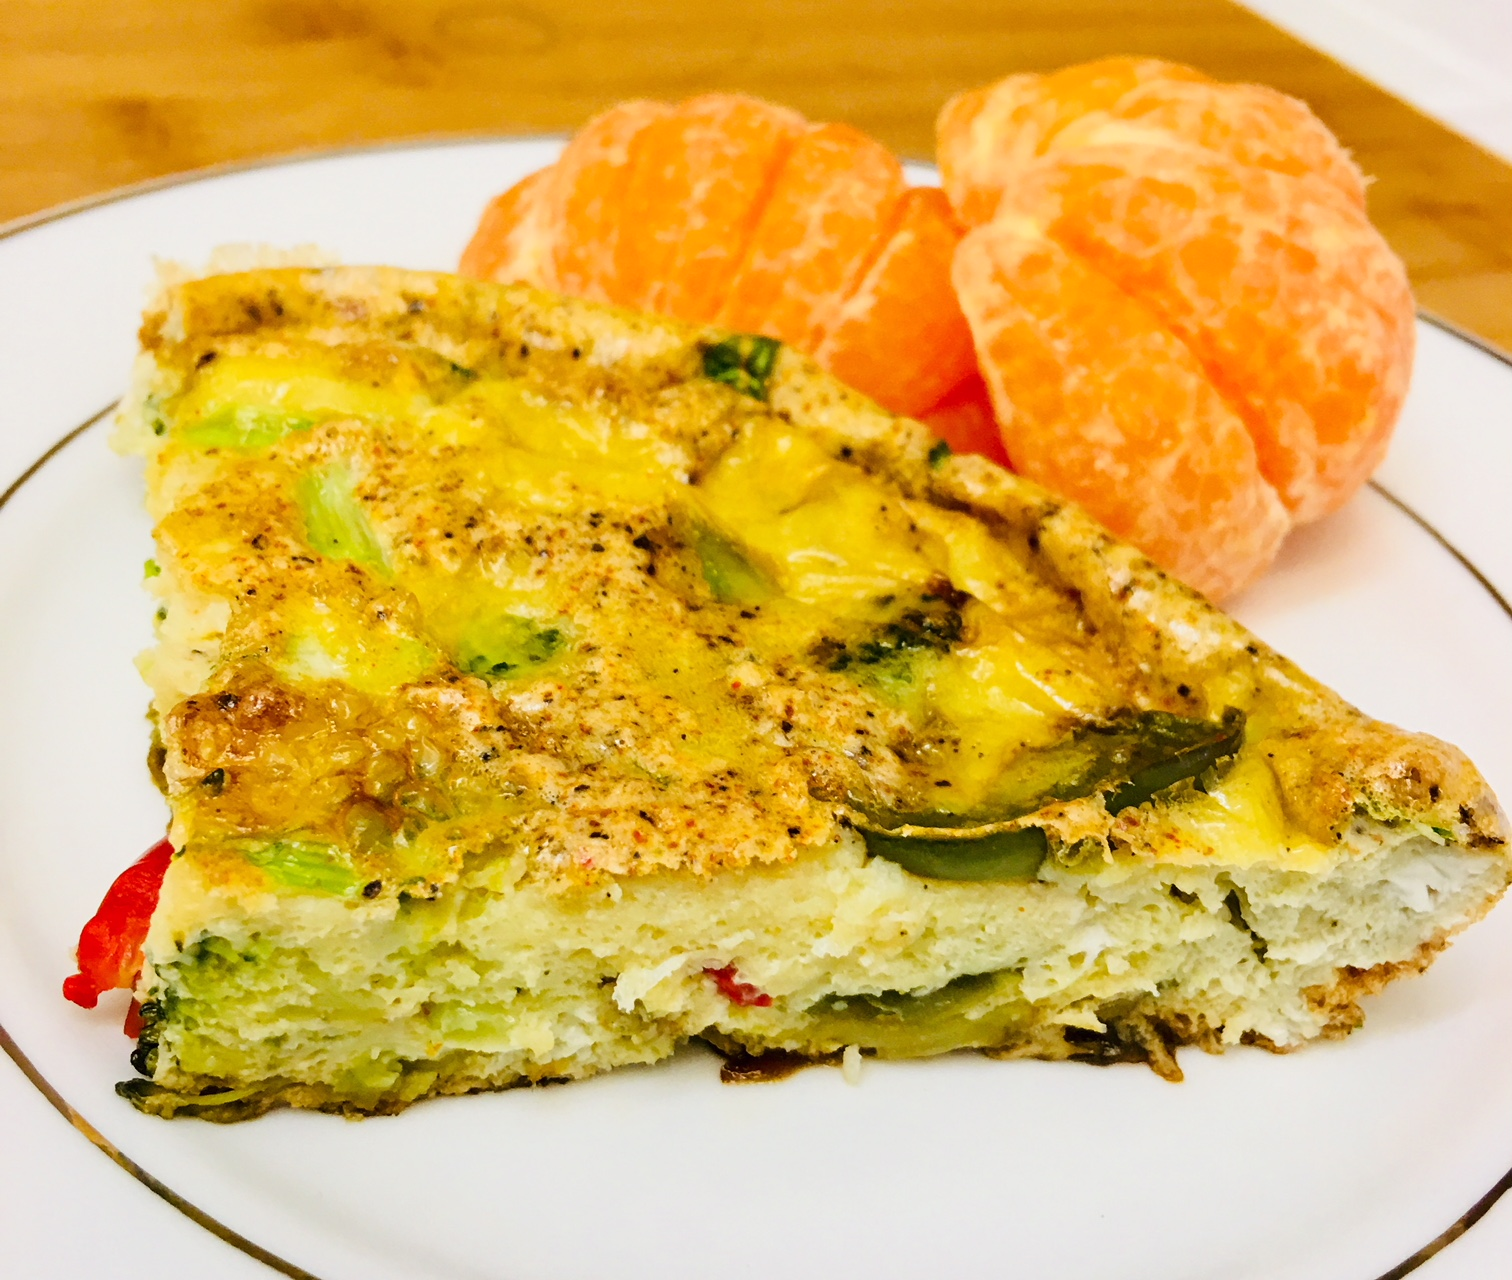 Broccoli and Peppers Frittata